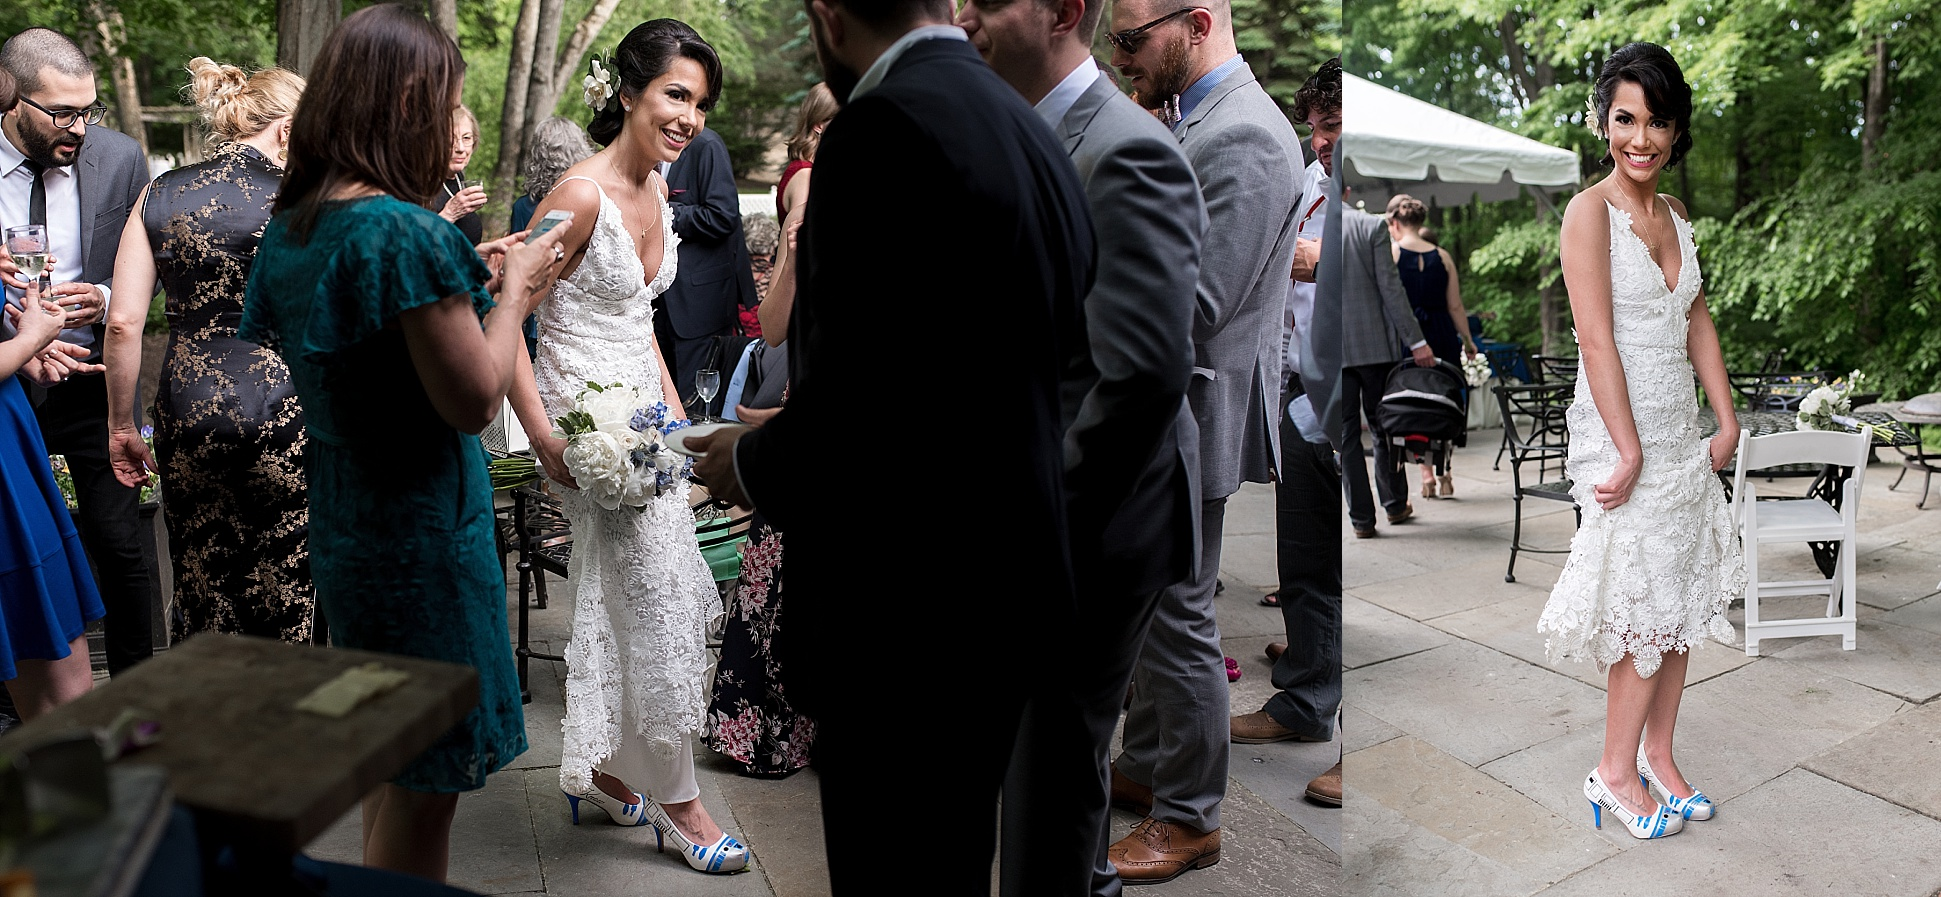 bride wearing r2d2 wedding shoes. connecticut wedding photography